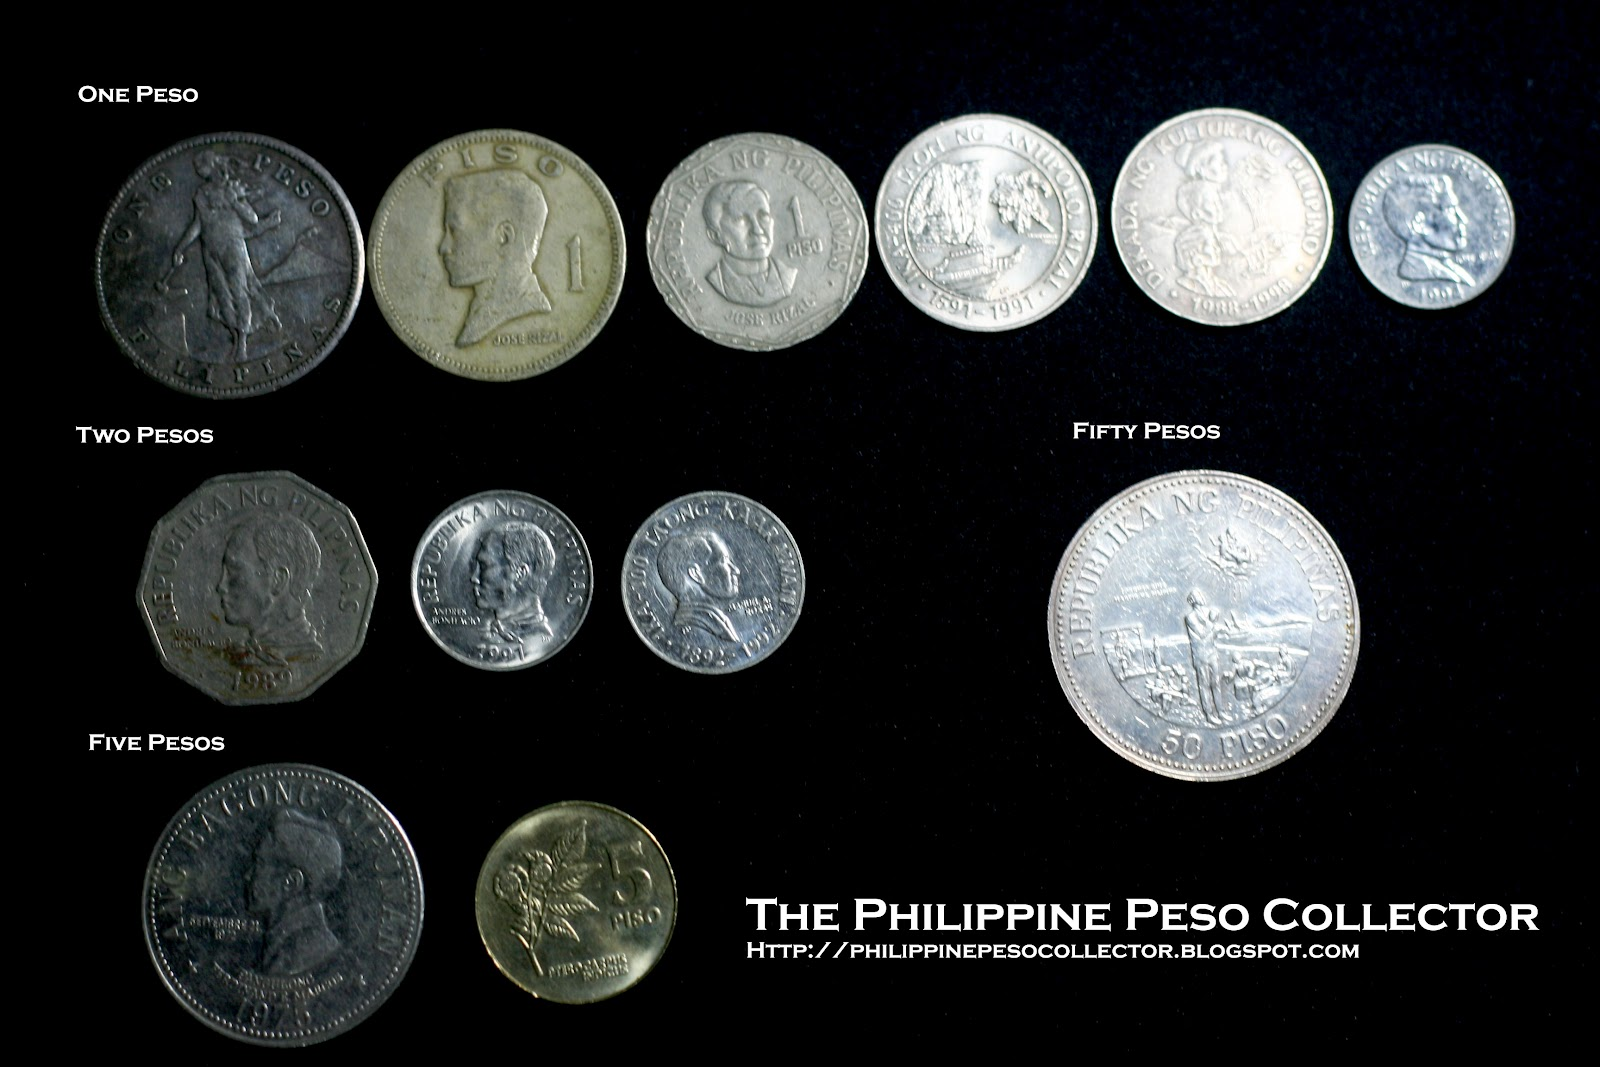 The Philippine Peso Collector